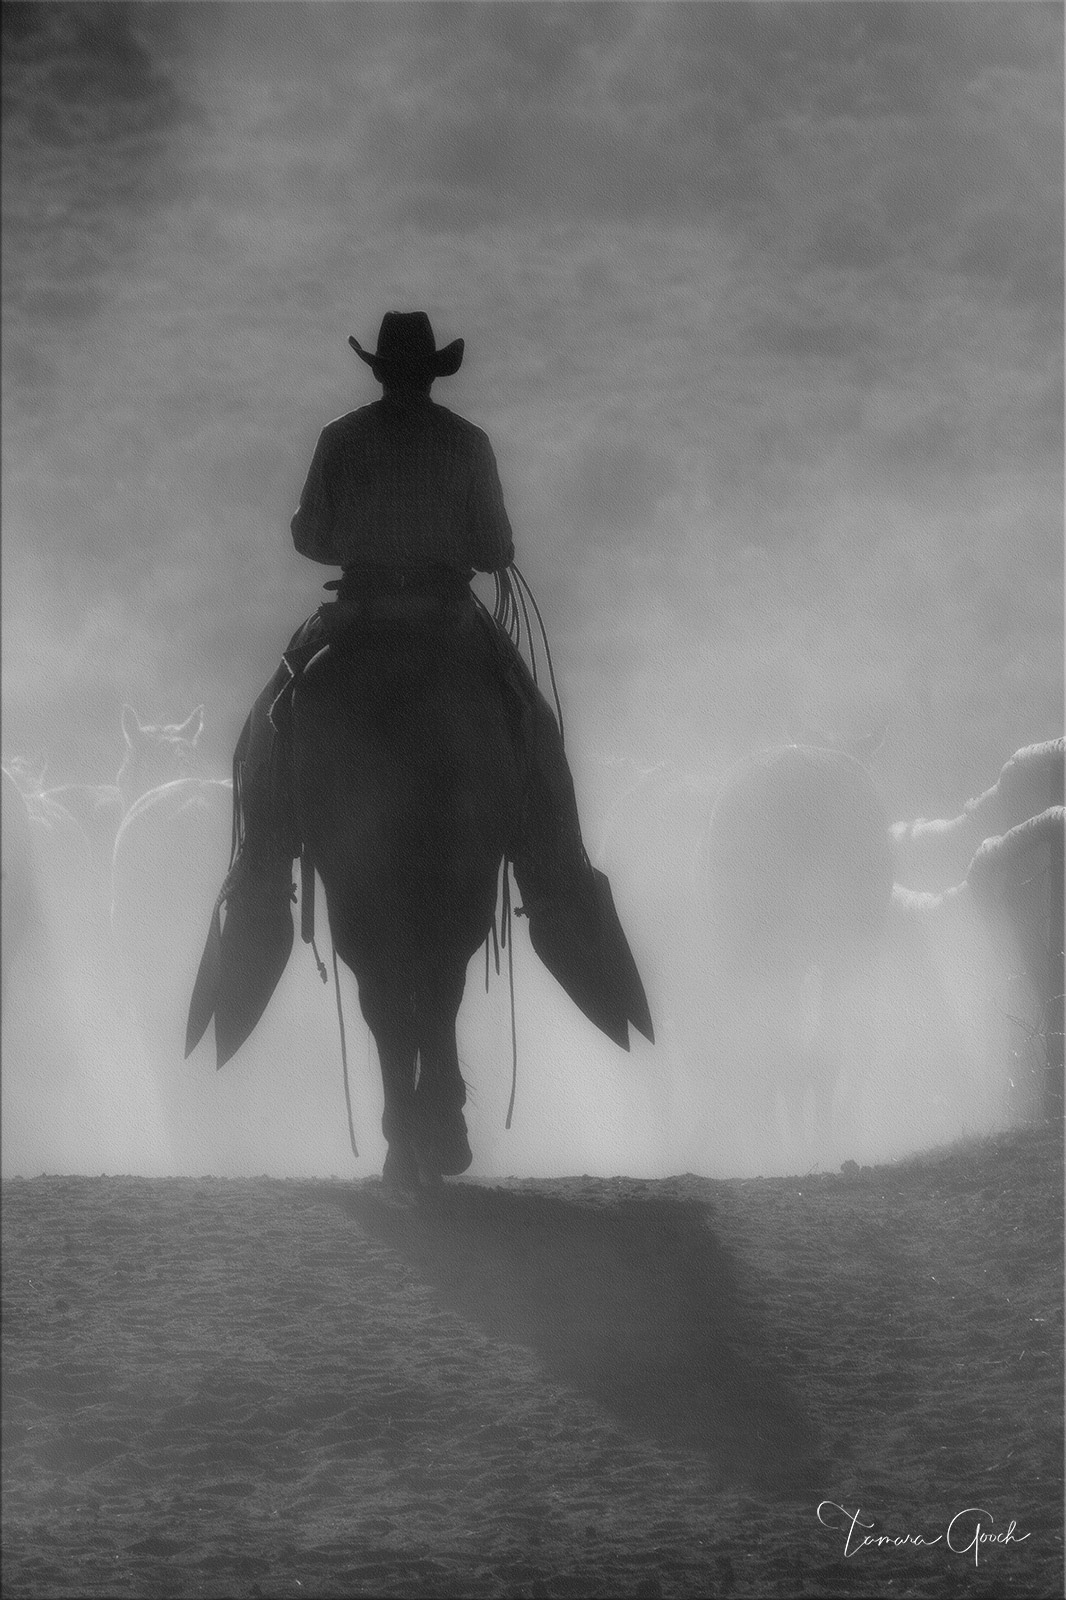 Black and white Western Cowboy photo print of a cowboy pushing horses surrounded by dust.